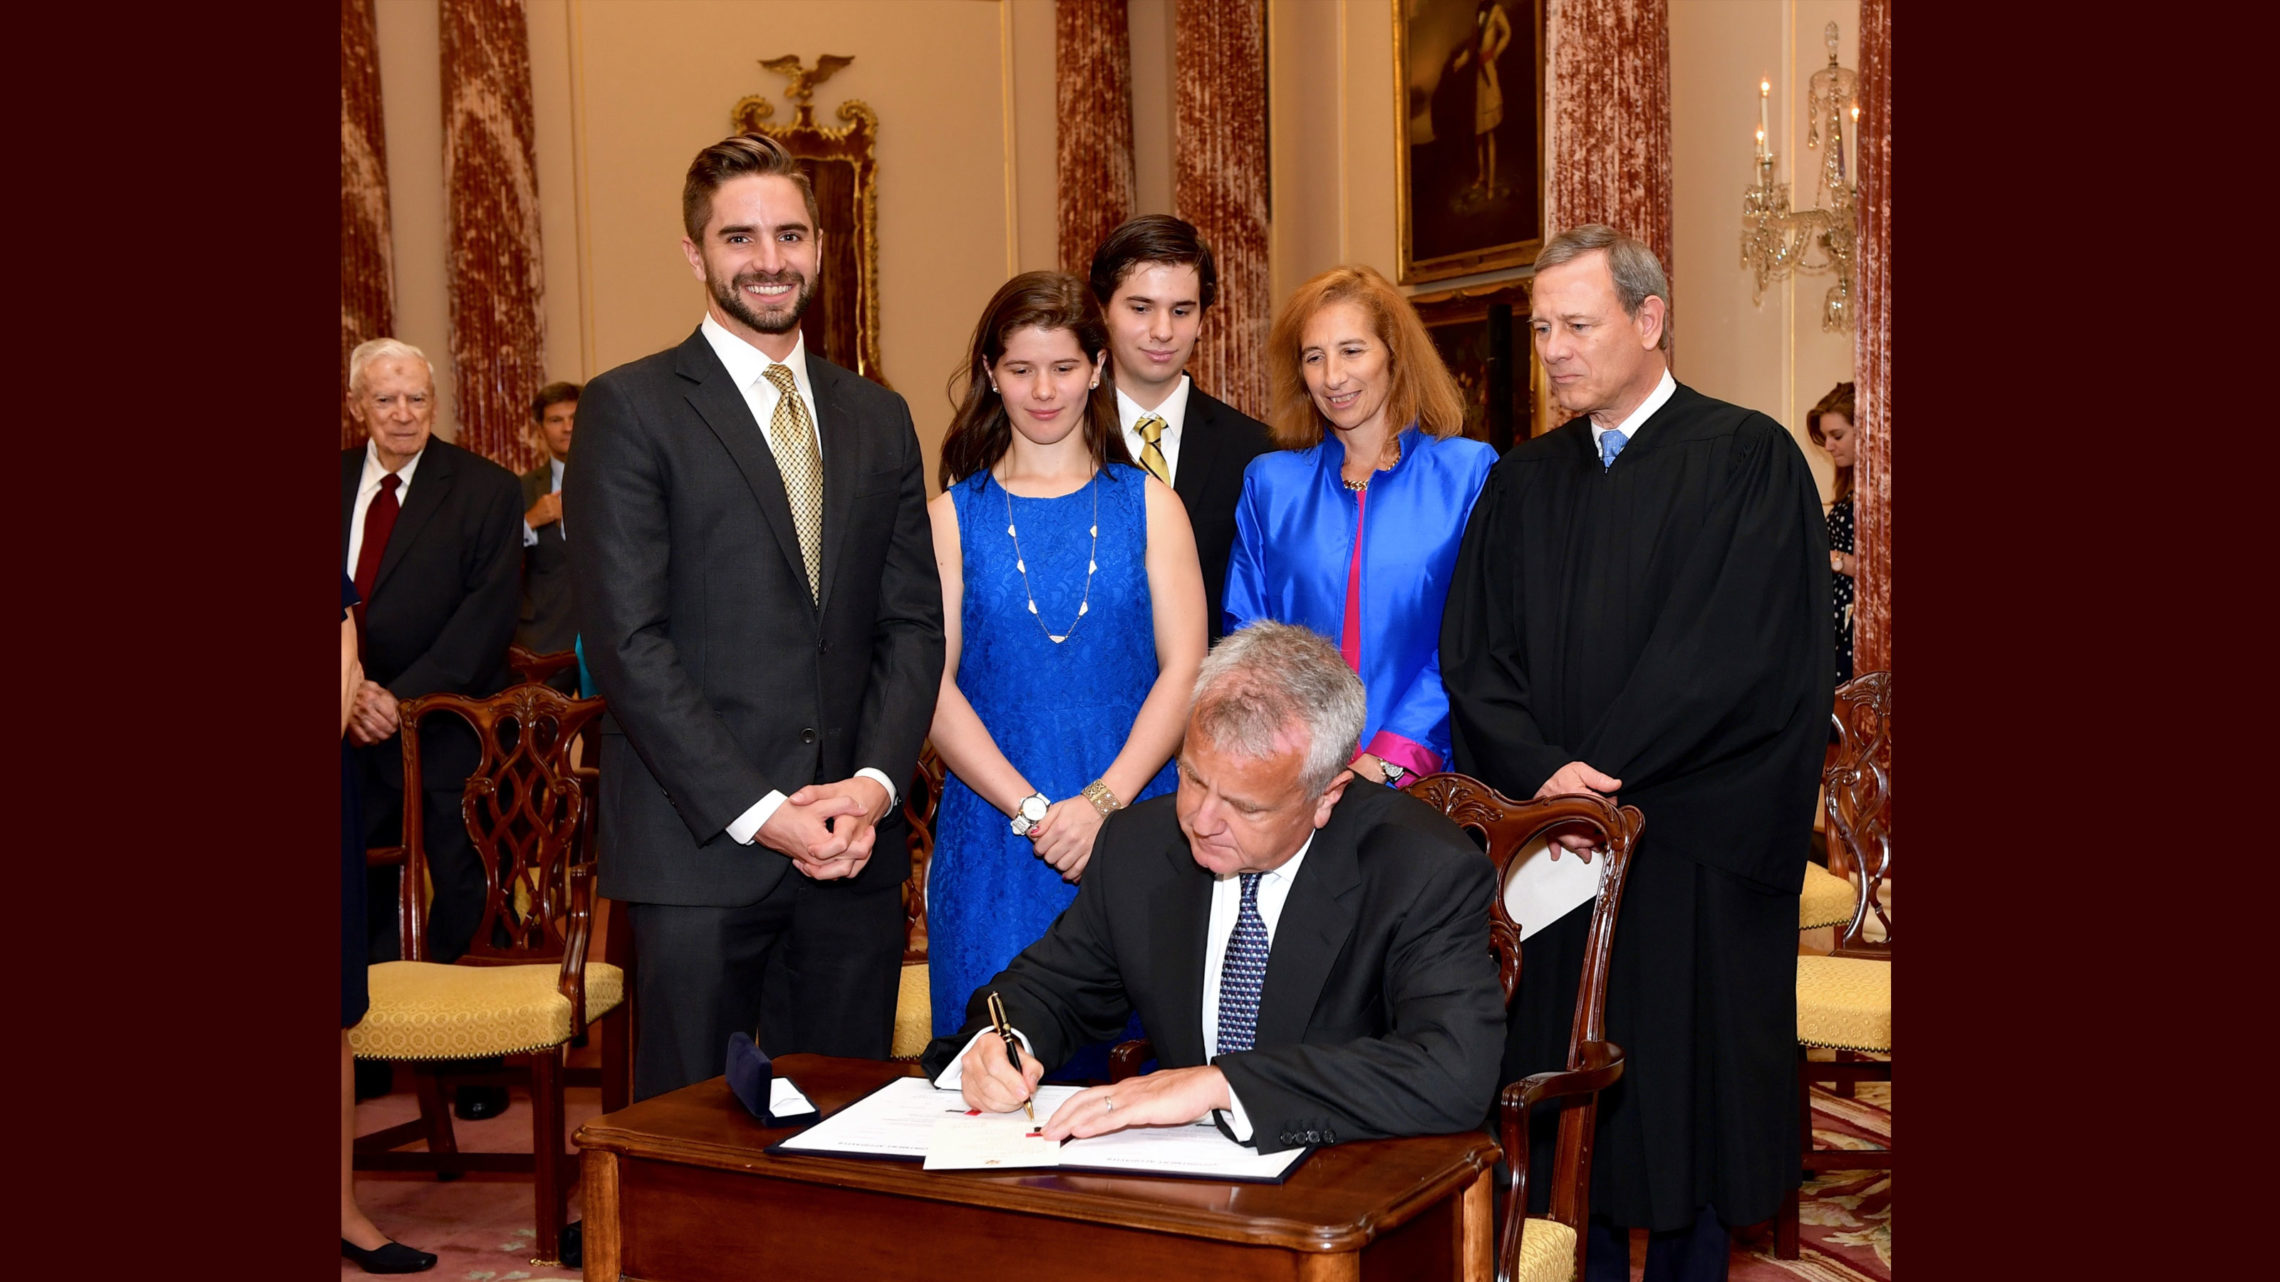 Deputy Secretary Sullivan Signs His Appointment Papers at his Swearing-in Ceremony in Washington